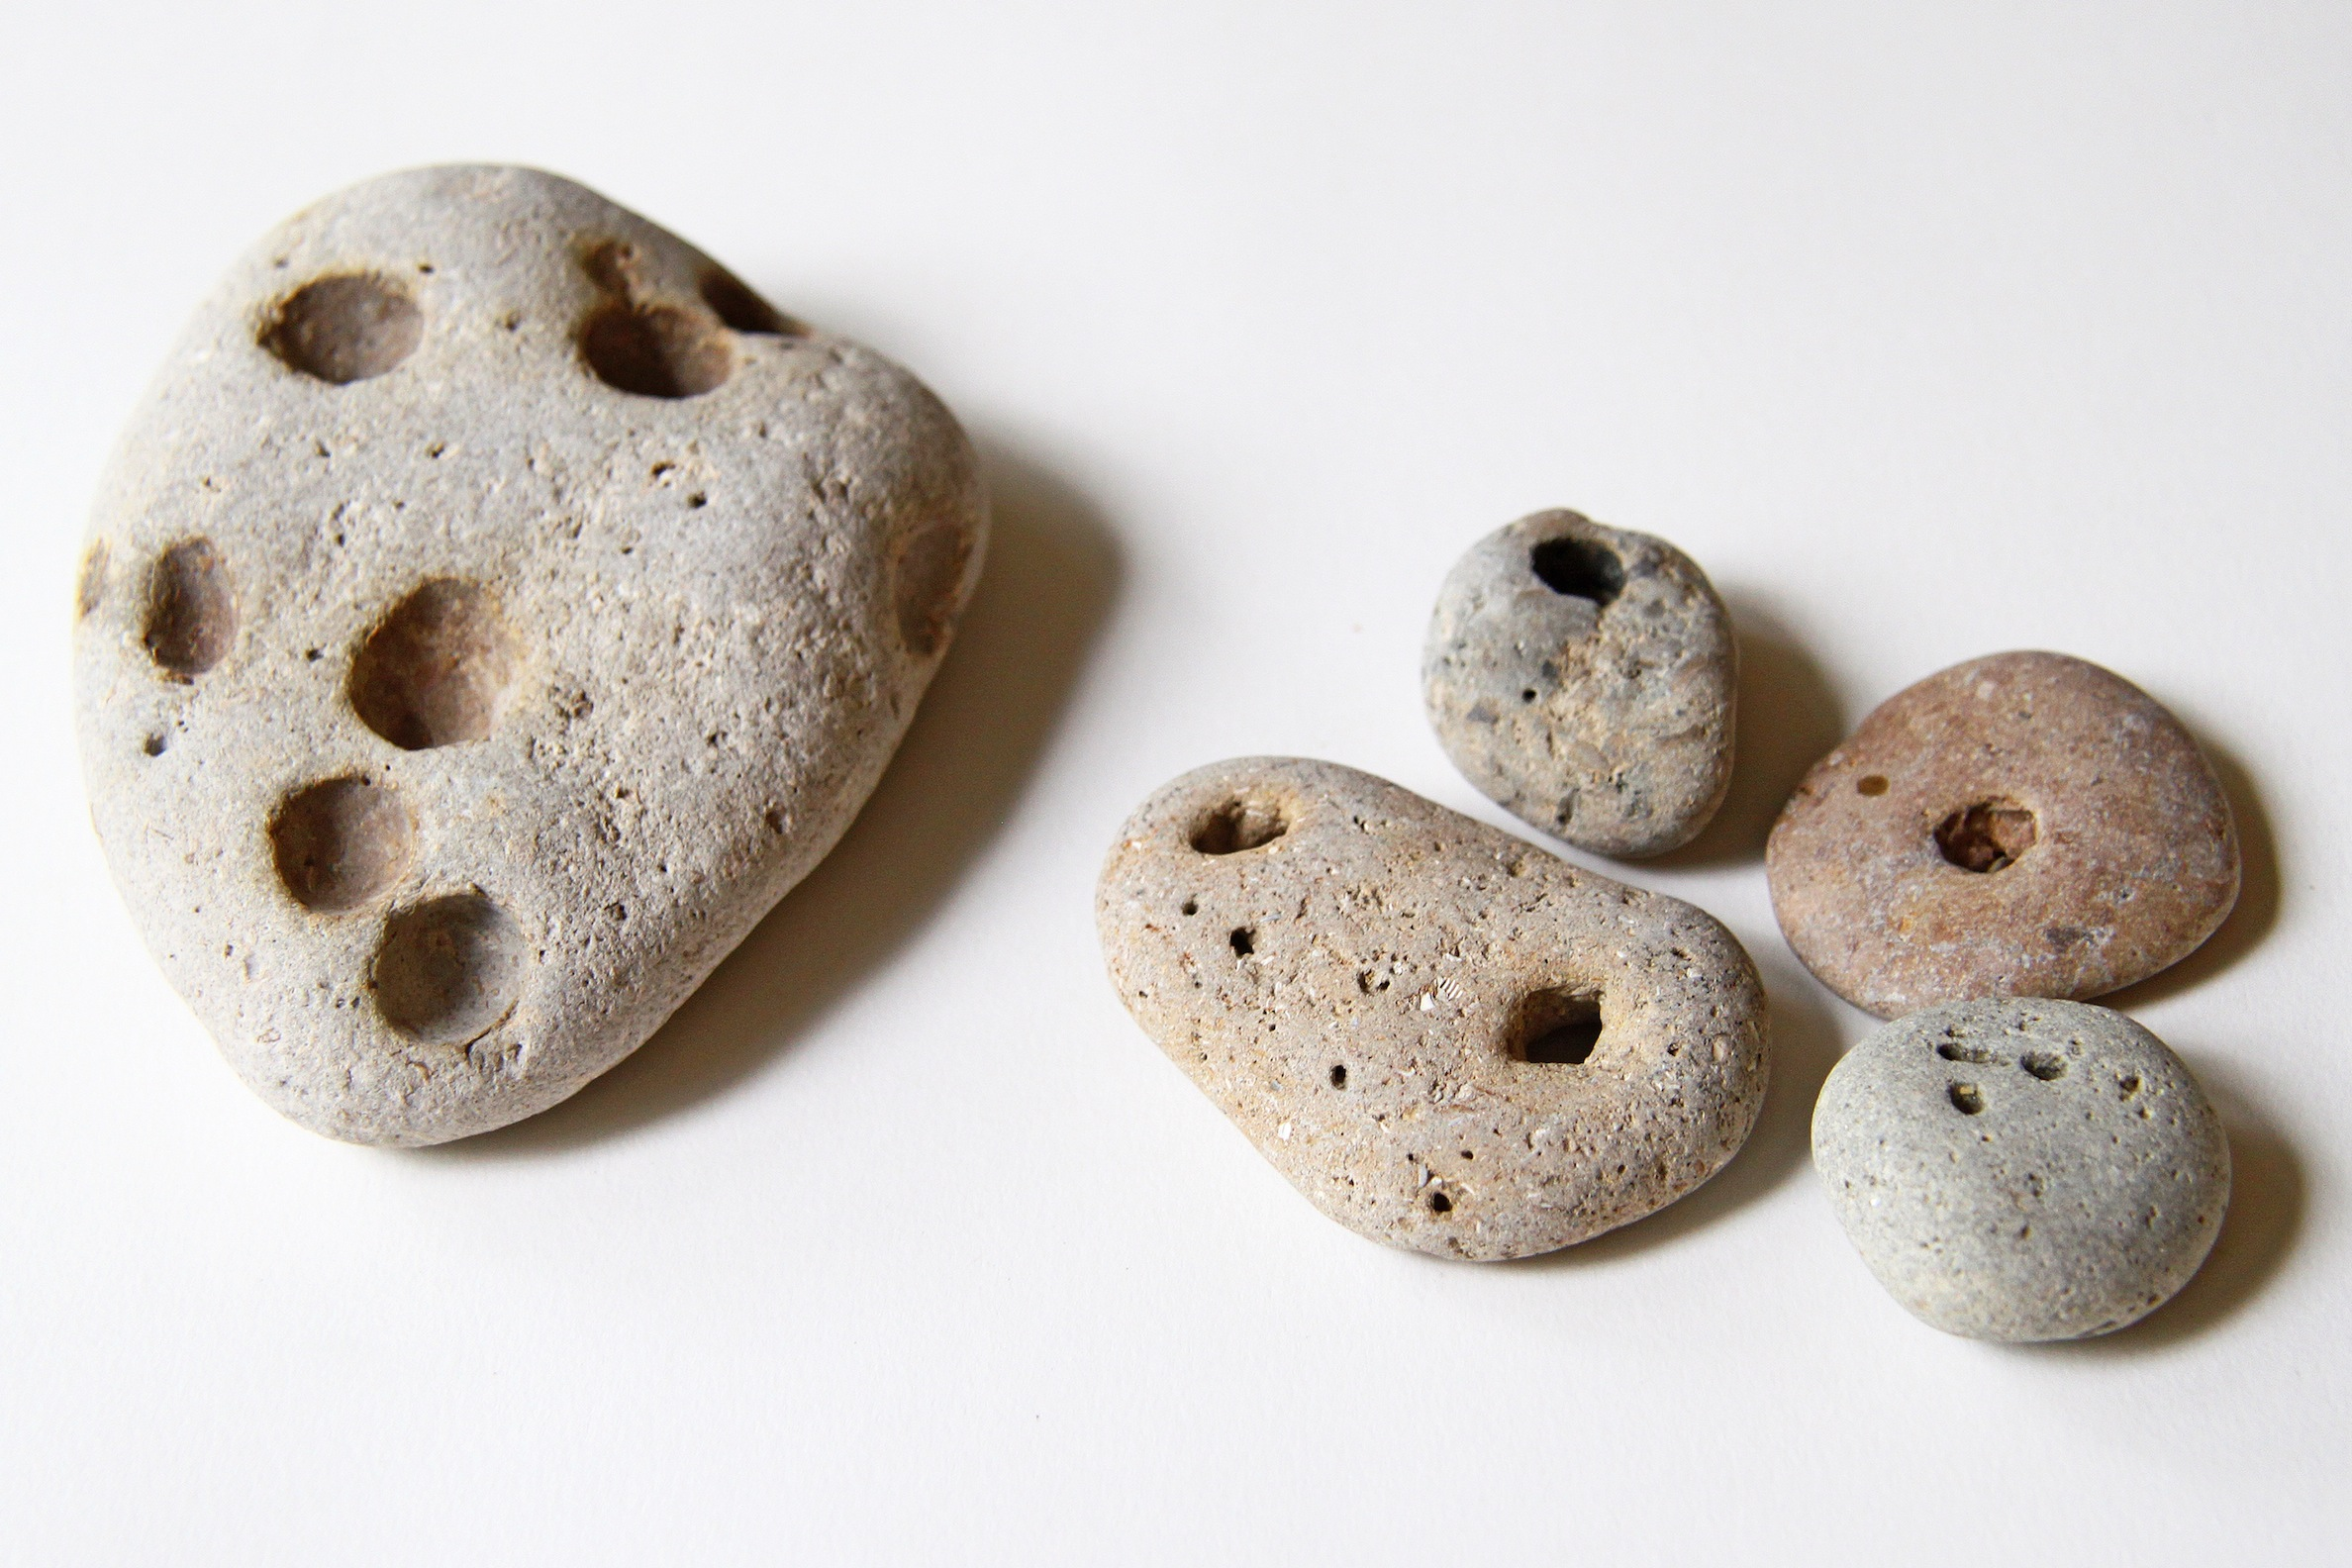 collection of rocks with small holes